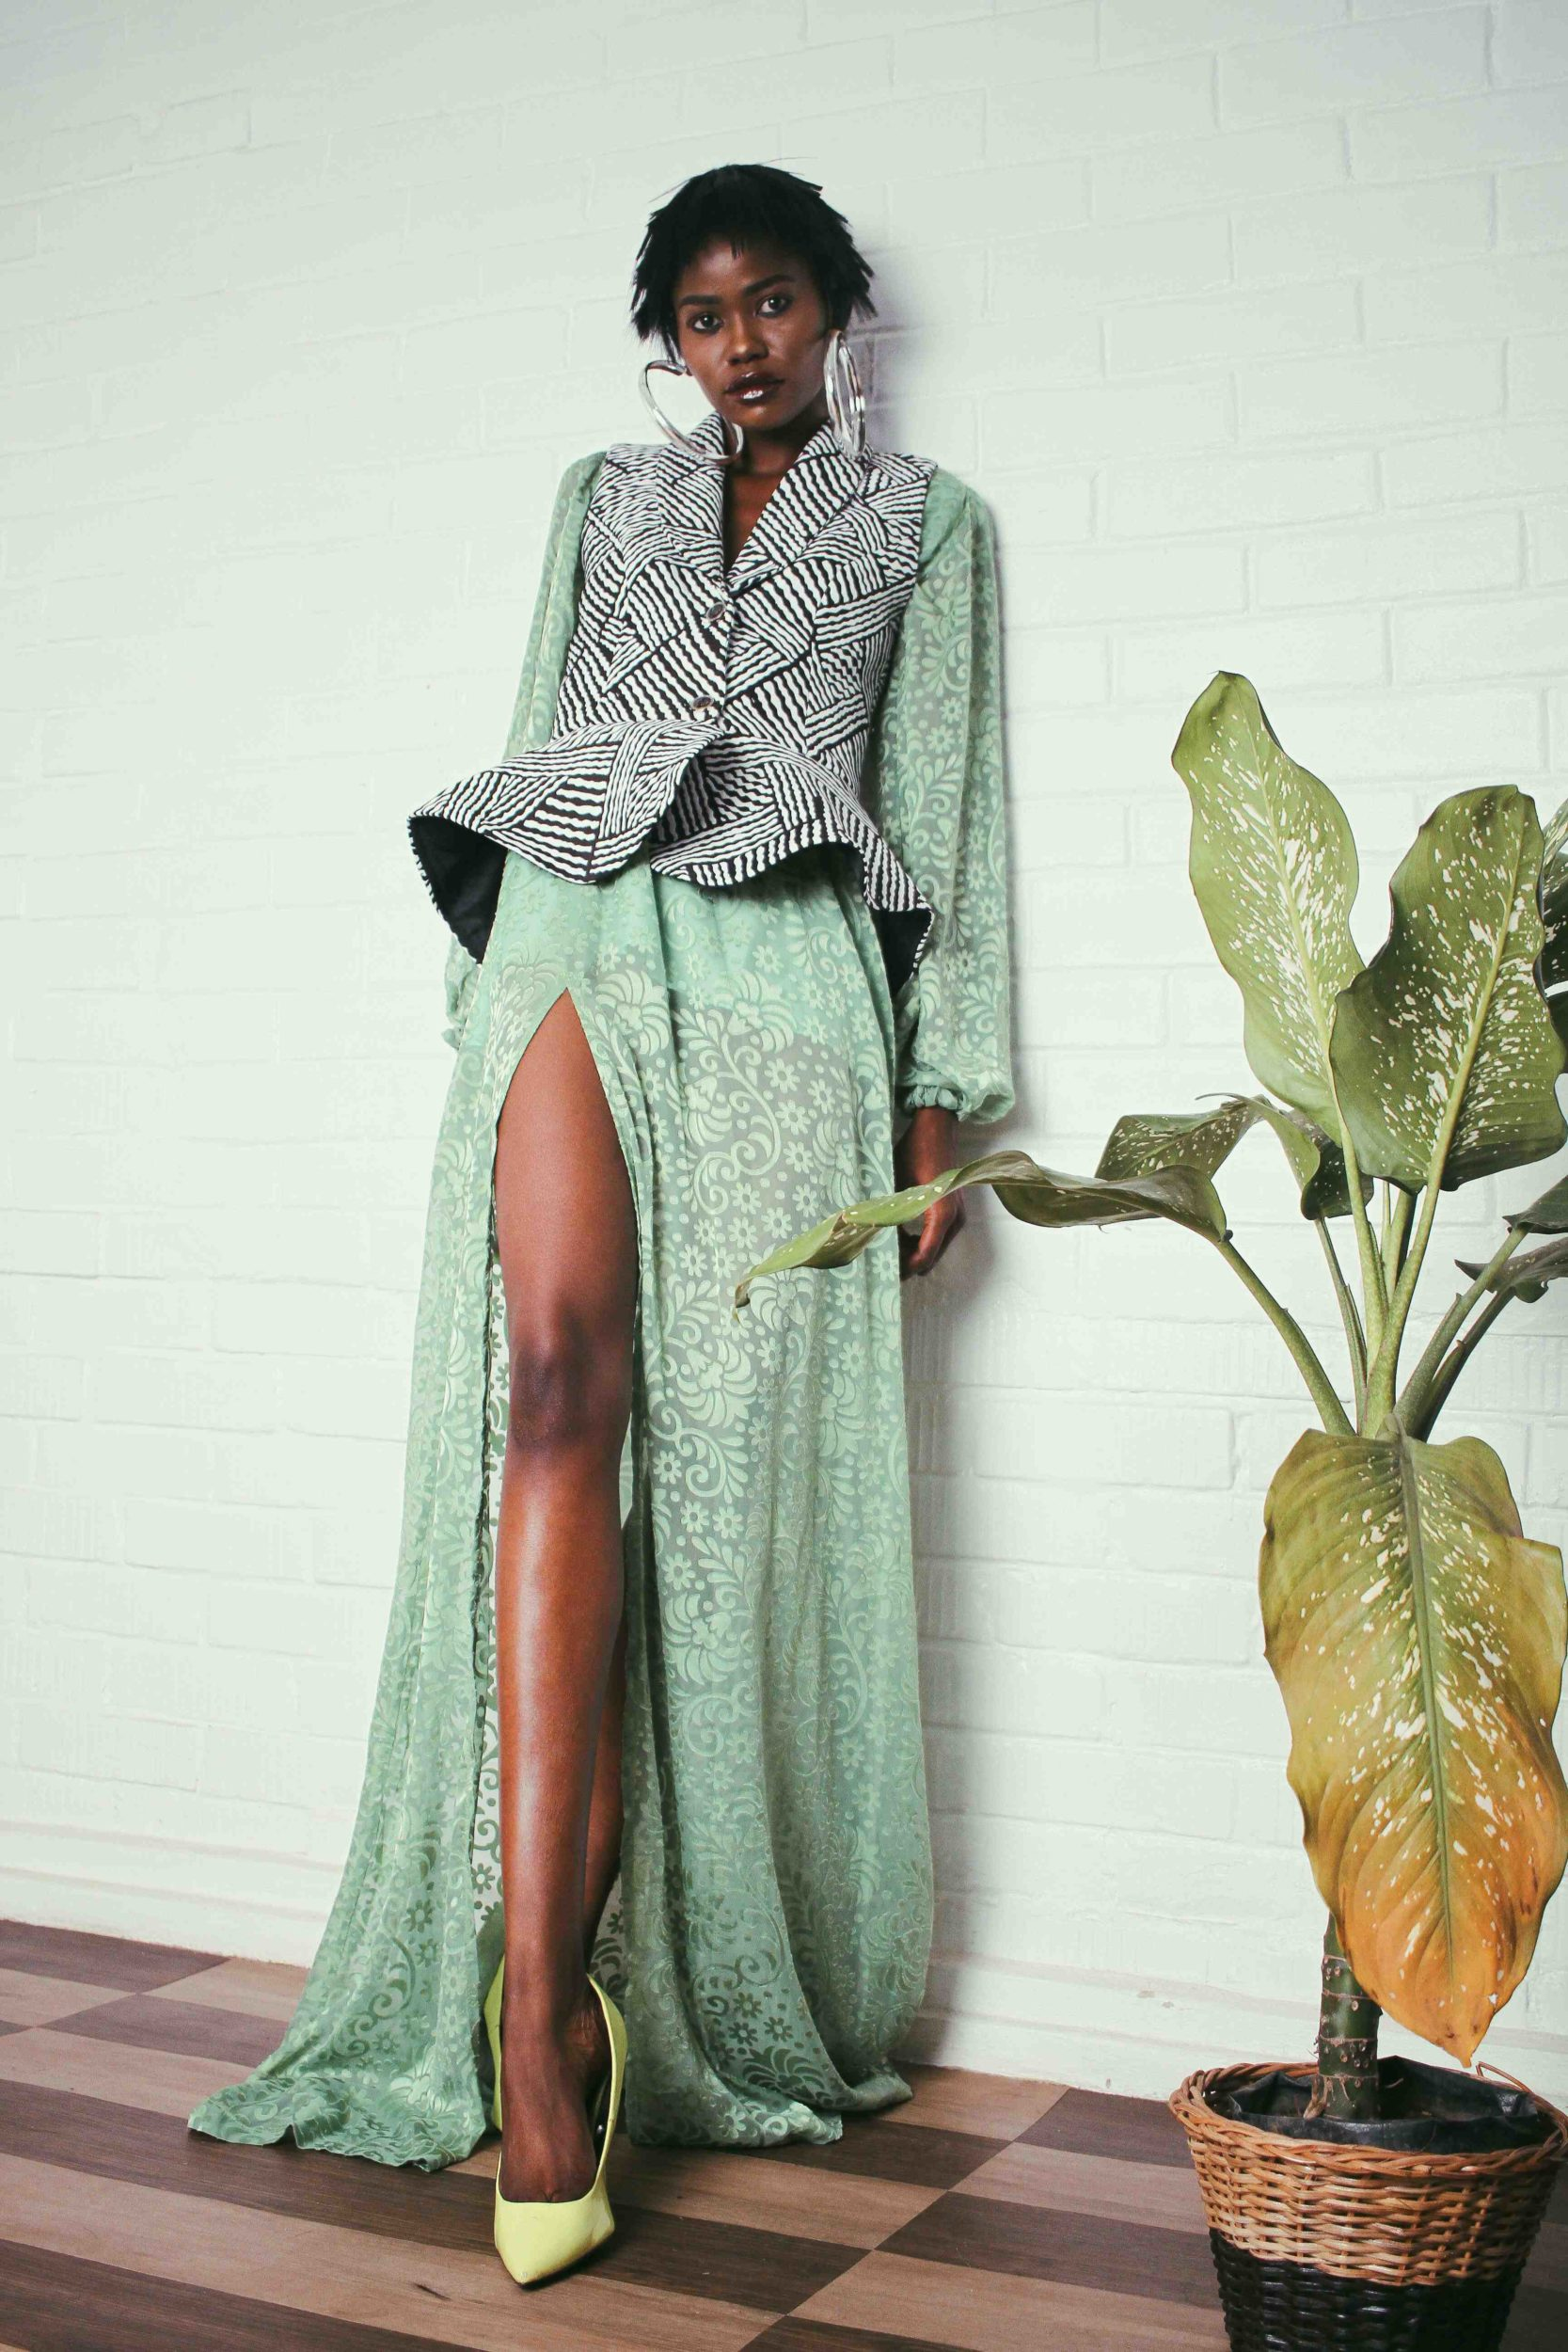 Fashion Girls Will Definitely Love Elpismegalio's Pre-Fall 2018 Collection